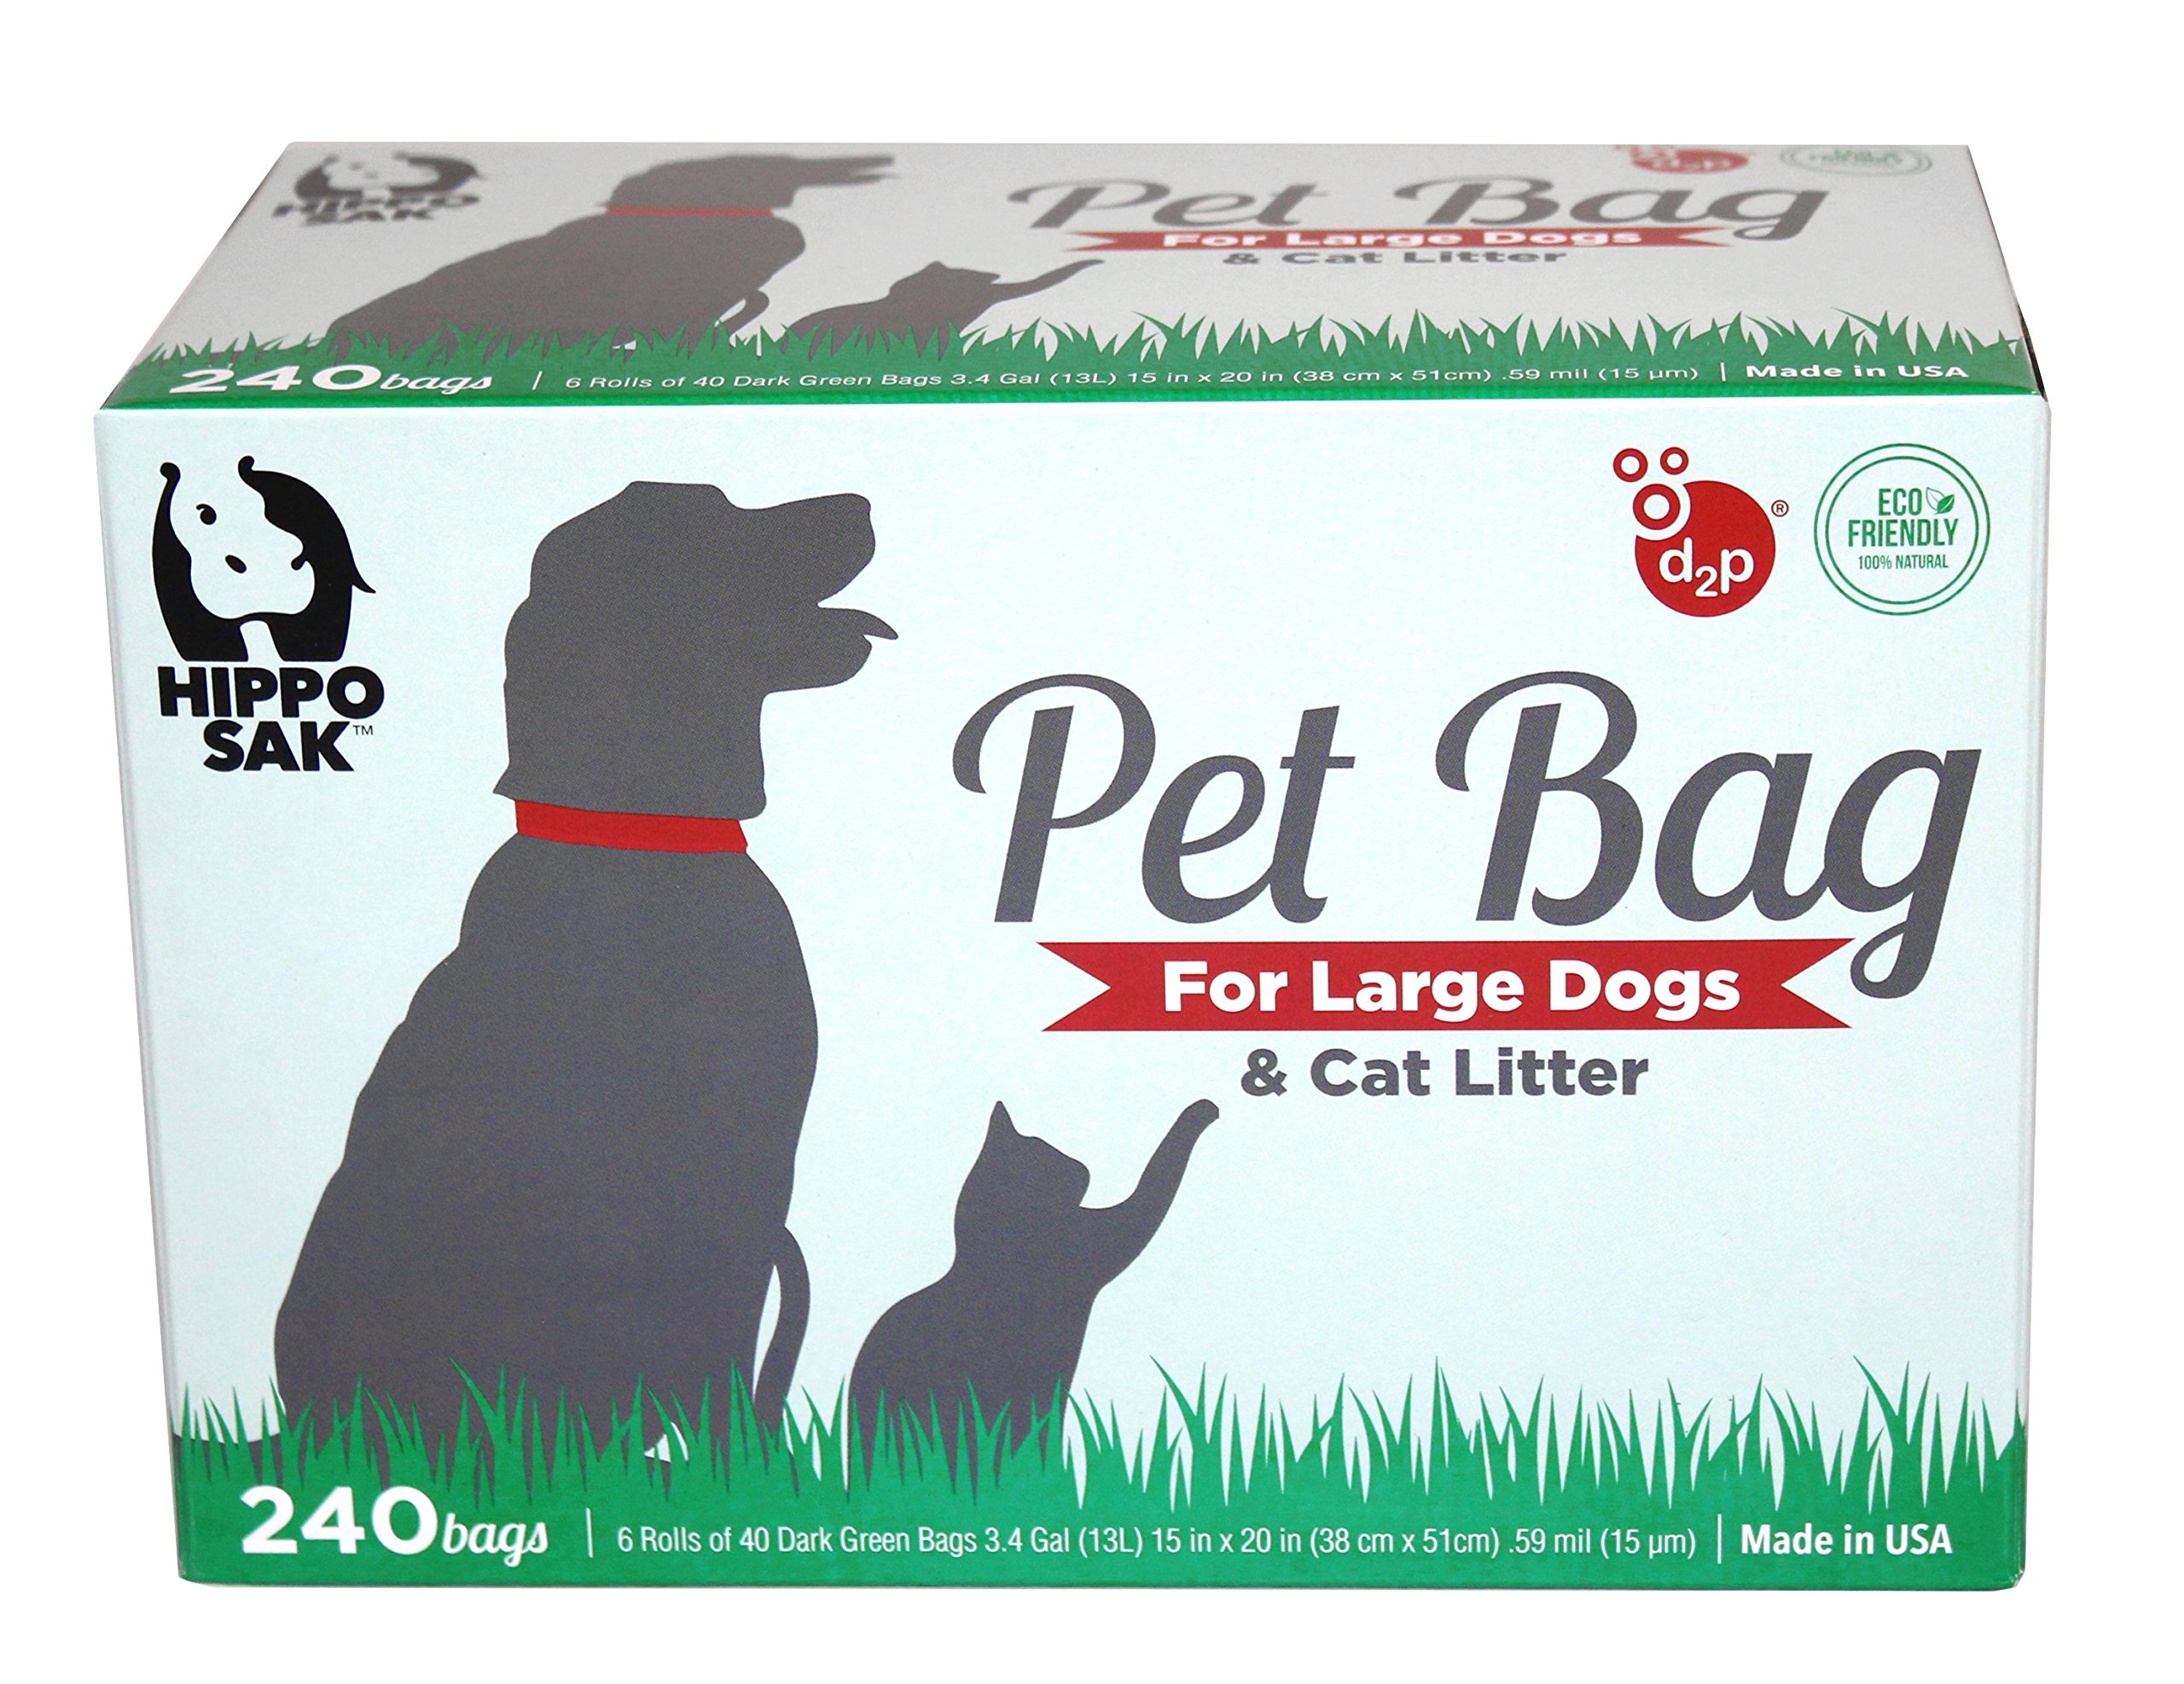 Hippo Sak Extra Large Pet Poop Bags for Large Dogs and Cat Litter, 240 Count